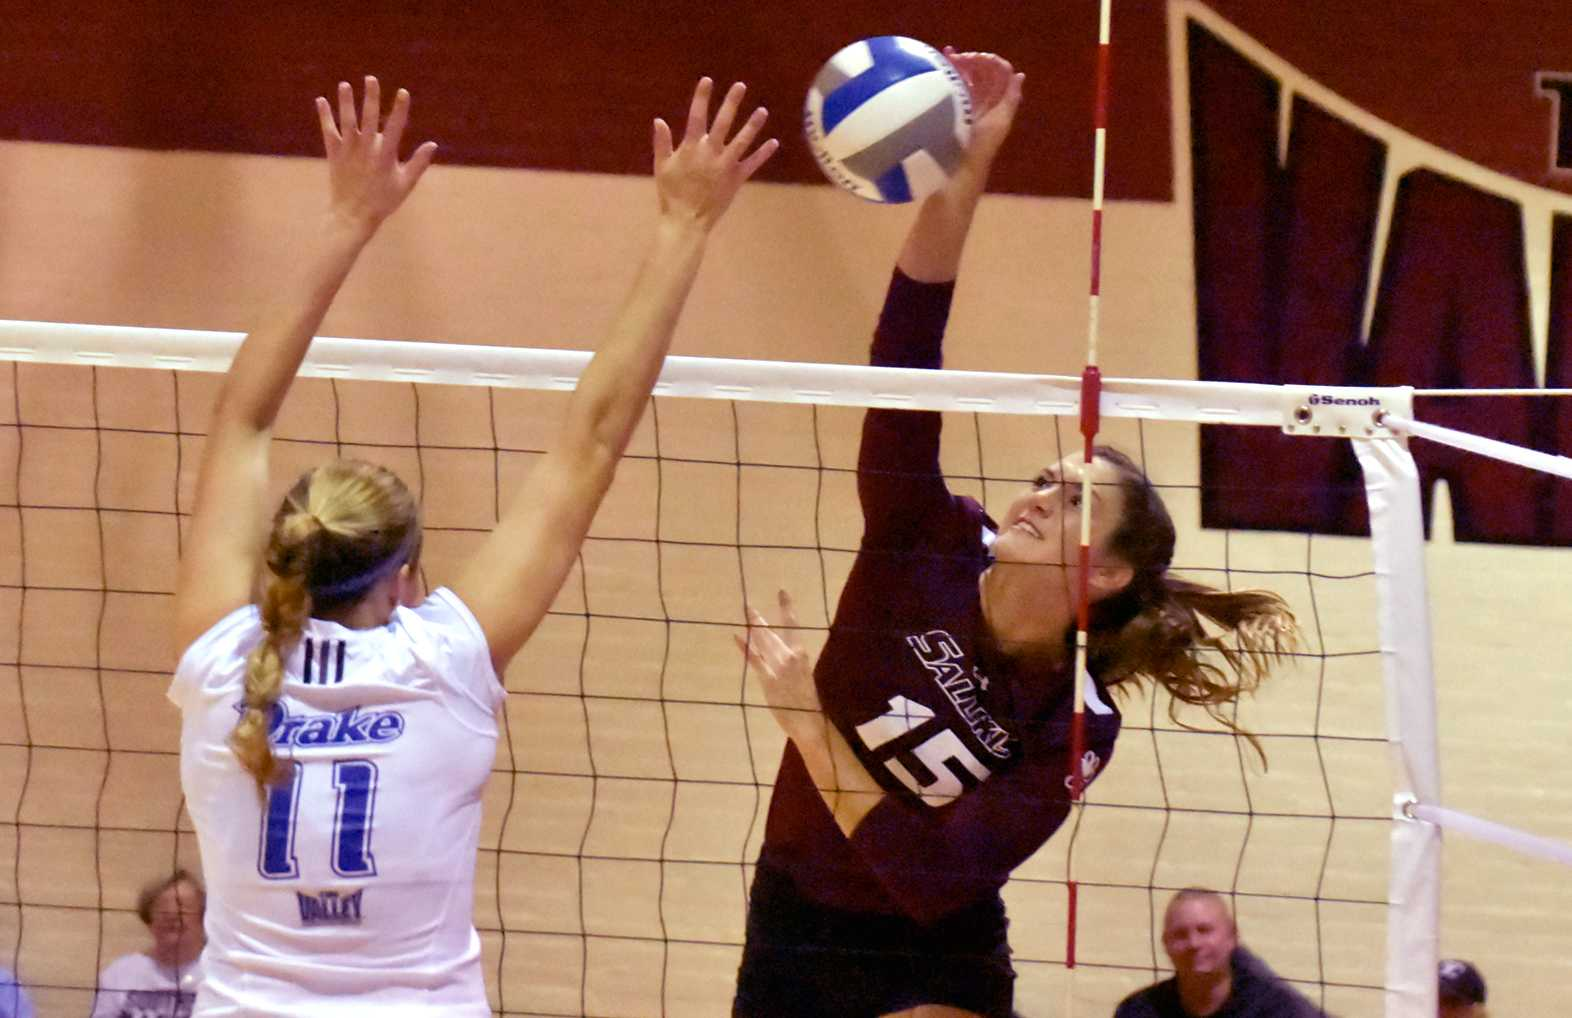 Junior outside hitter Abby Barrow attempts a kill during the Salukis' 3-1 win over the Drake Bulldogs on Saturday, Sept. 24, 2016, in Davies Gym. (Sean Carley | @SCarleyDE)